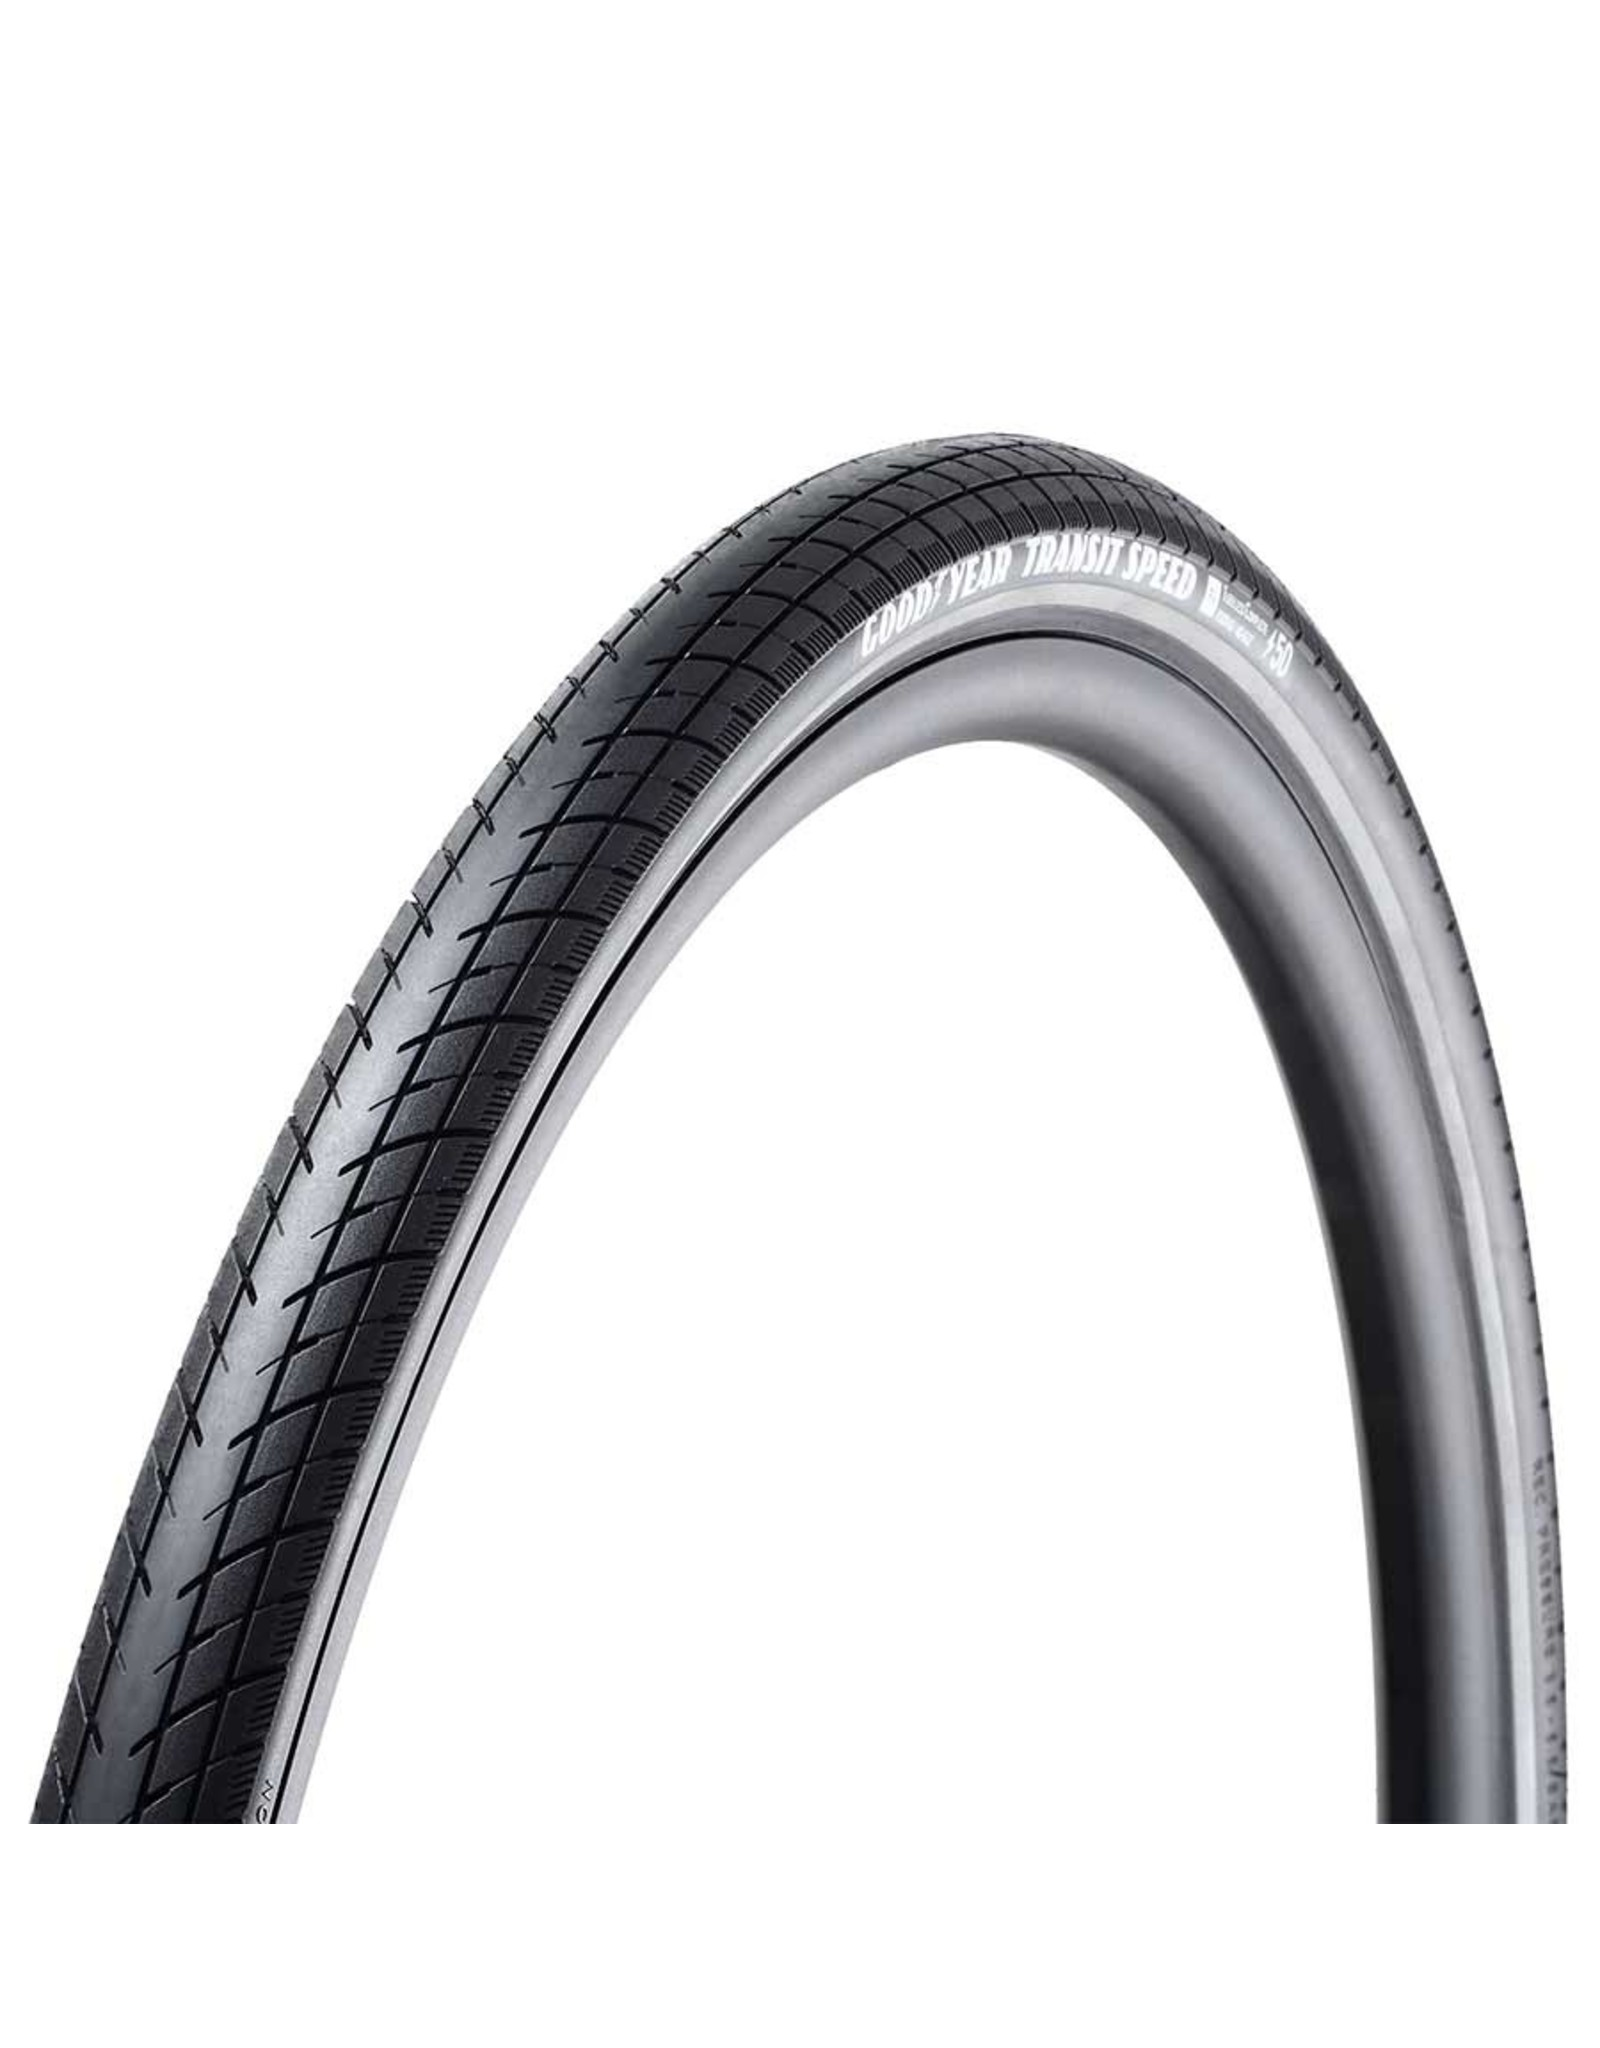 Goodyear, Transit Speed, Tire, 700x35C, Wire, Clincher, Dynamic:Silica4, S3: Shell, 60TPI, Black